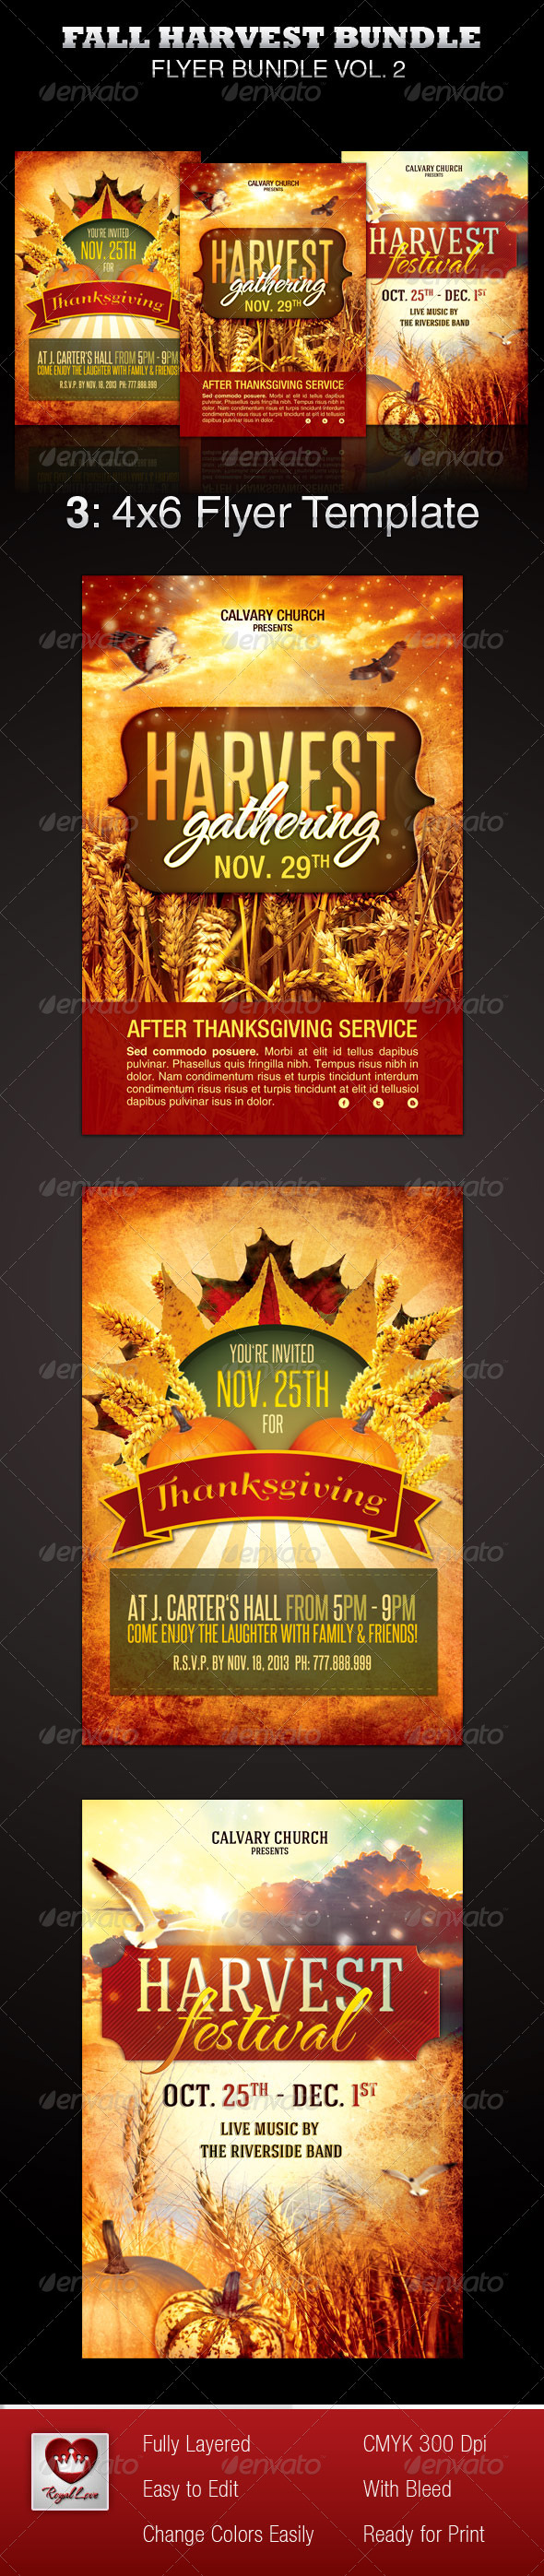 Fall Harvest Flyer Template Bundle - Church Flyers